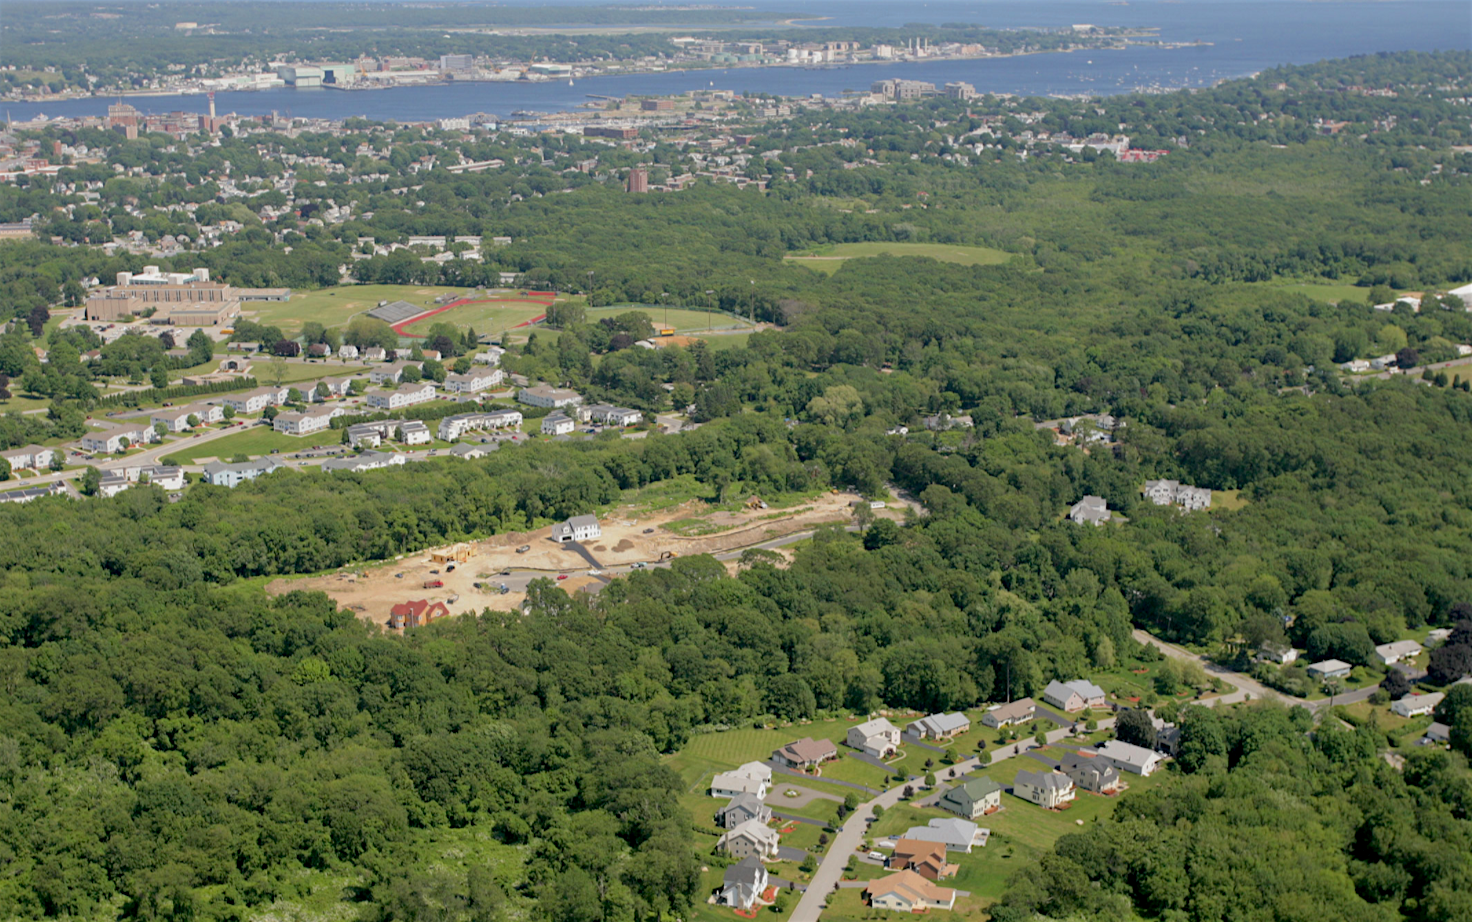 Residential development near the mouth of the Connecticut River.